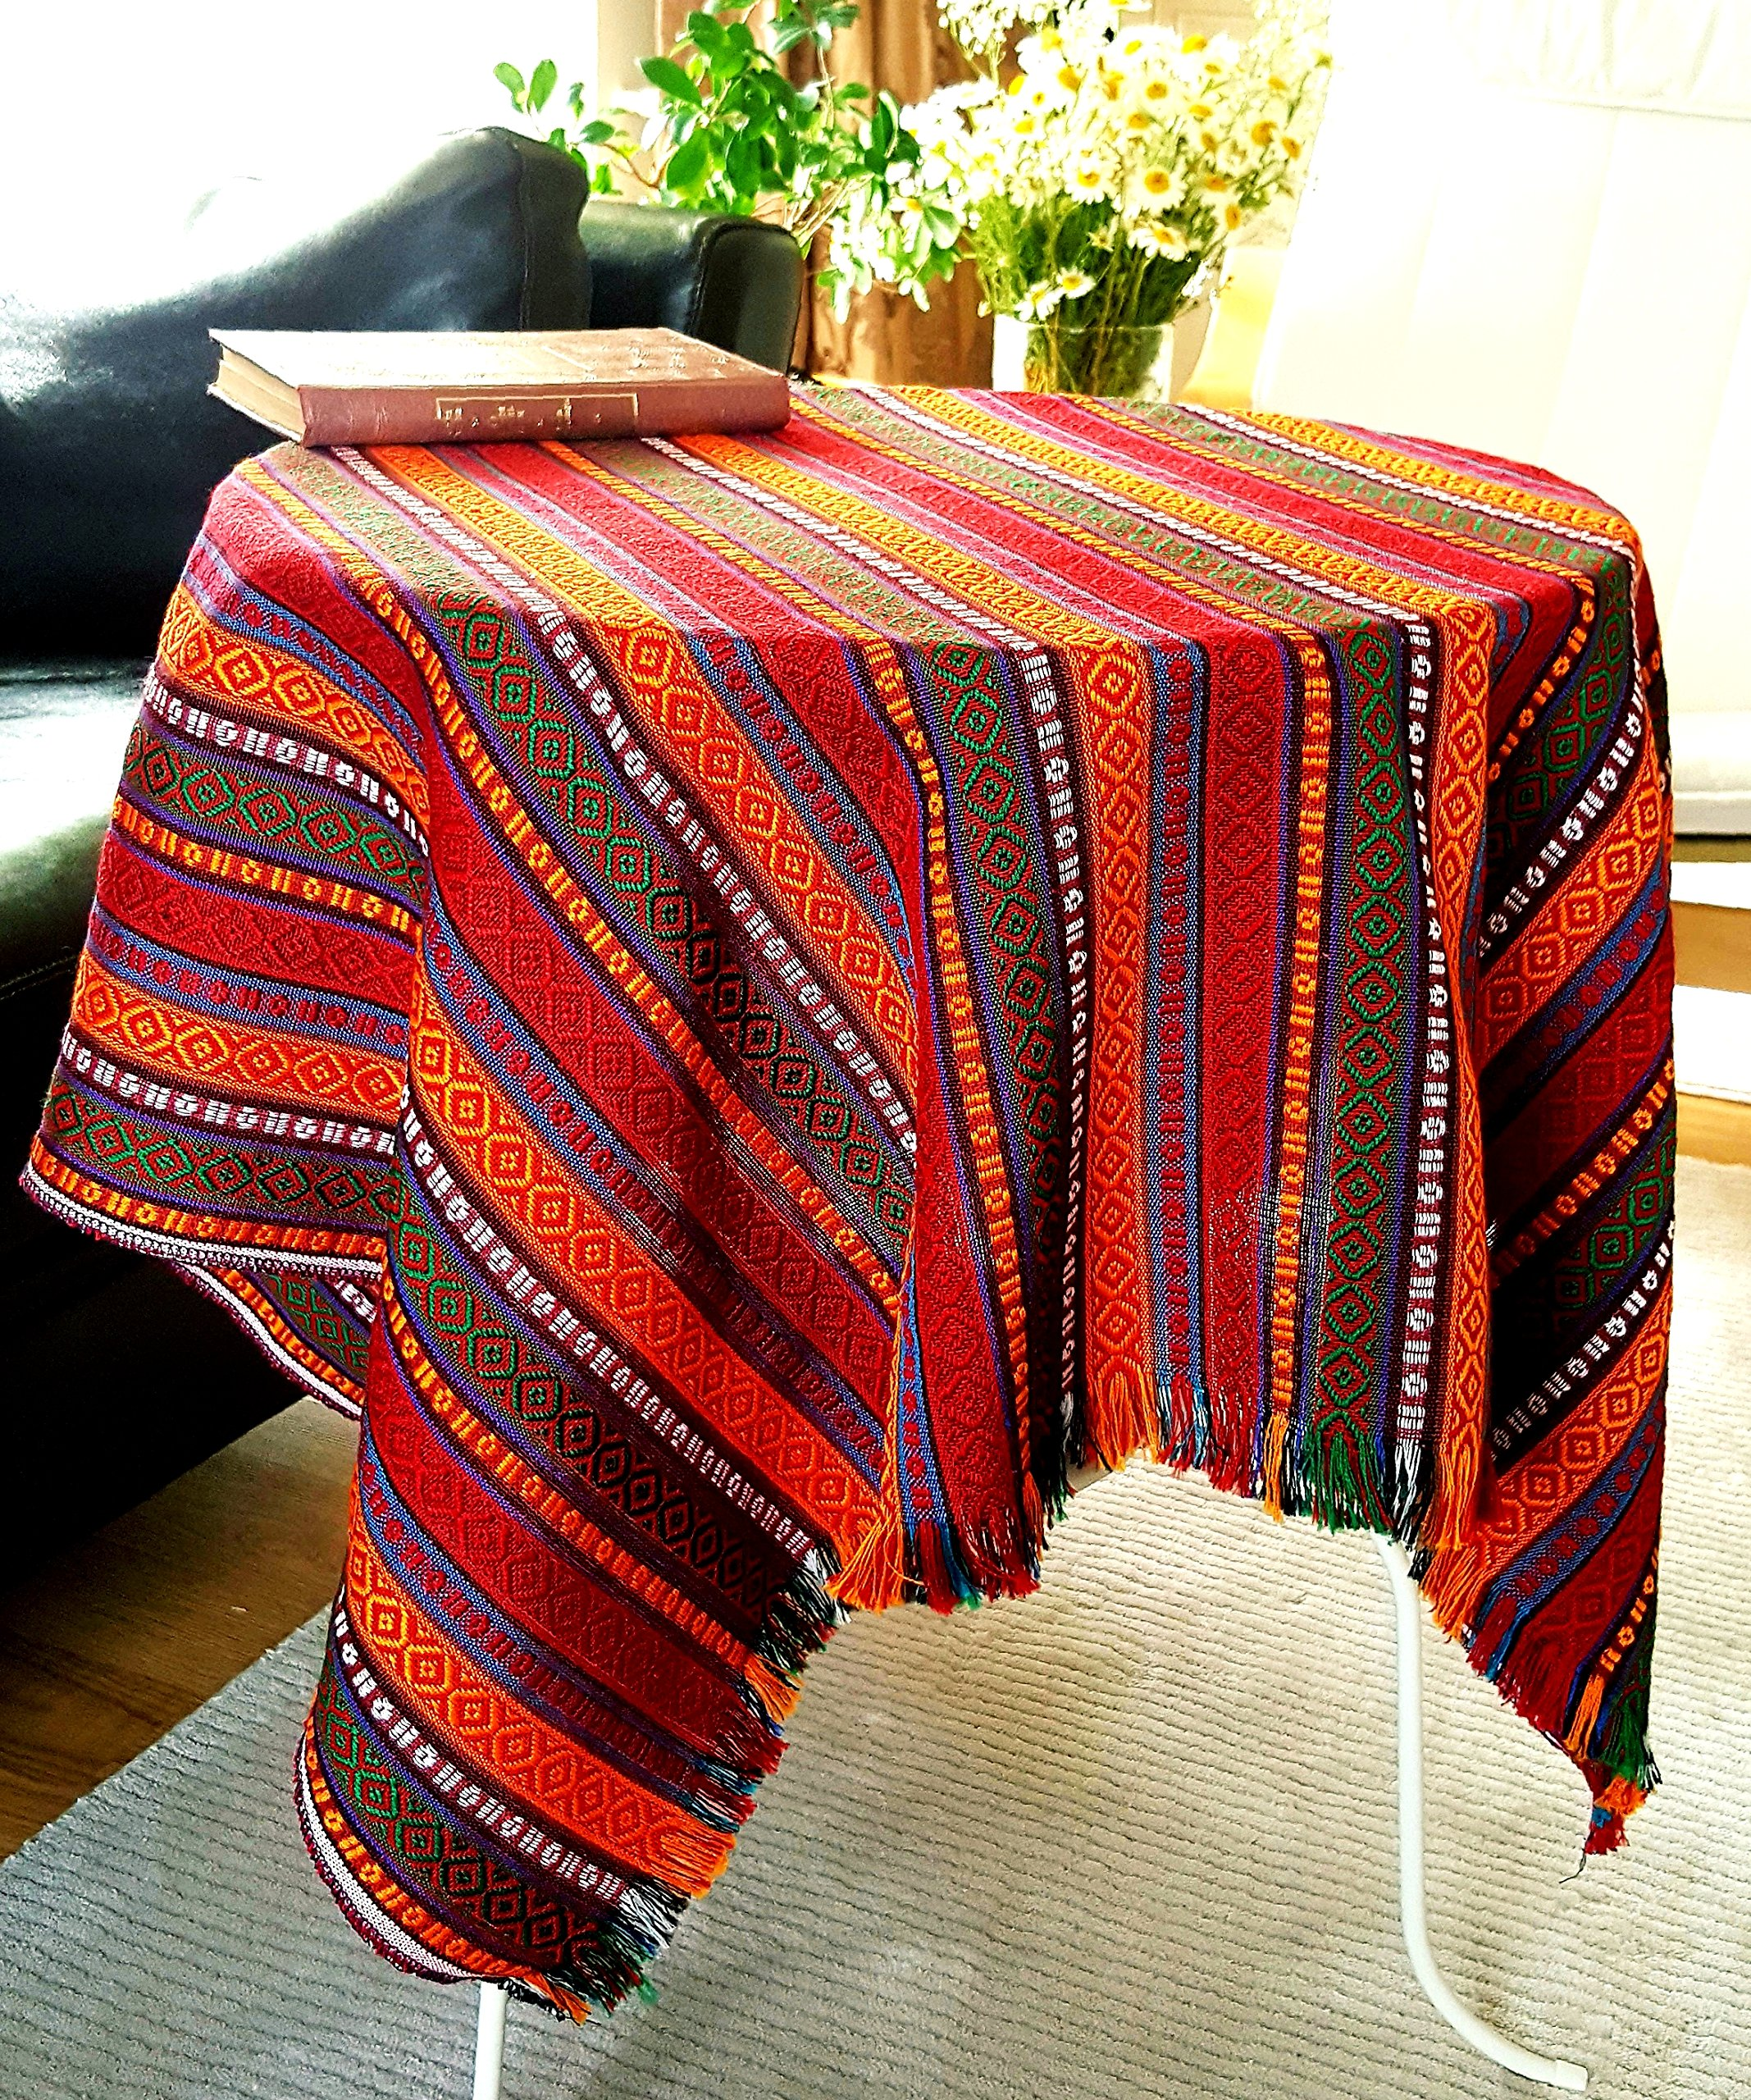 "Secret Sea Collection Multicolor Striped Cotton Square Tablecloth, Washable, Reversible, Hot Chili Sauce (40"" x 40"") - Vibrant colors and It's great quality fabric to suit your table better. The design is woven in, not printed for exceptional quality! Made in Turkey, Material: Cotton, Dimension: 40'' x 40'' inches (100x100 cm), Weight:0.88 lb, Shape: Square Versatile and Reversible, Perfect for end tables, side tables, balcony tables, outdoor picnic tables, Multiuse: tablecover, picnic blanket, cover, throw,any outdoor indoor event, play blanket, yoga blanket - tablecloths, kitchen-dining-room-table-linens, kitchen-dining-room - A1wrk QD1FL -"